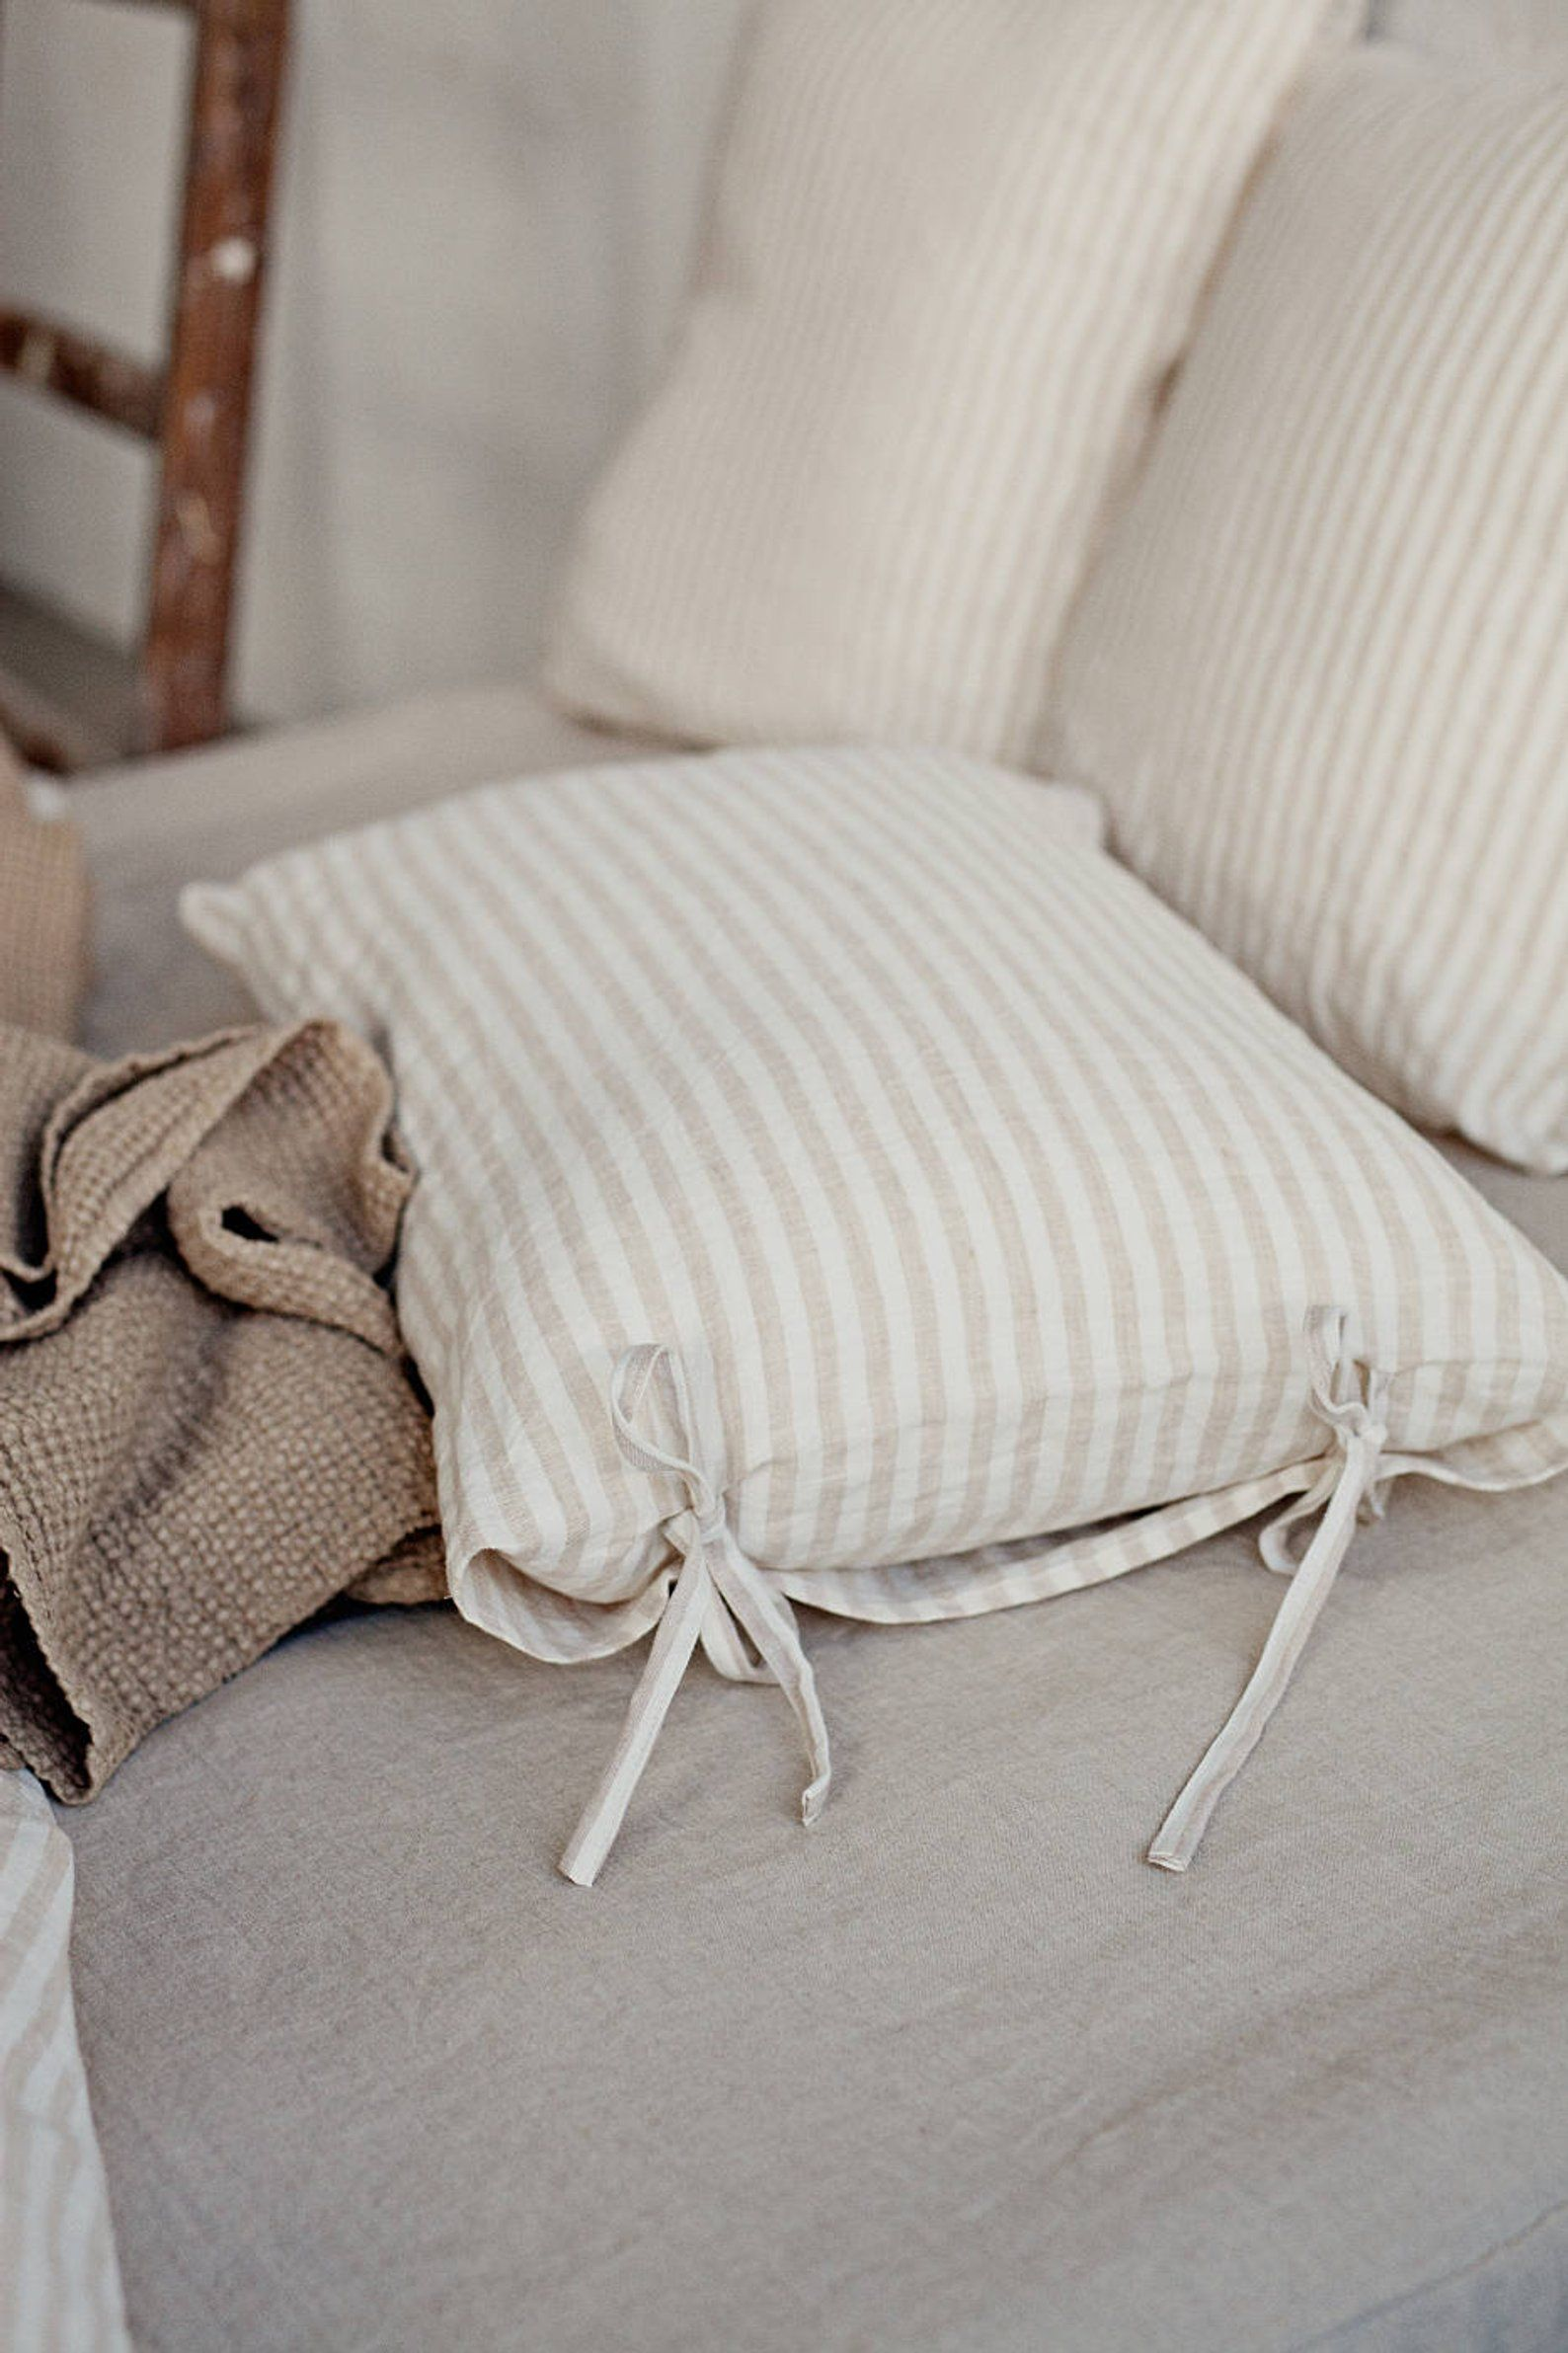 Tessuti Arredamento Per Divani natural striped linen pillow case with skinny ties. bow tie